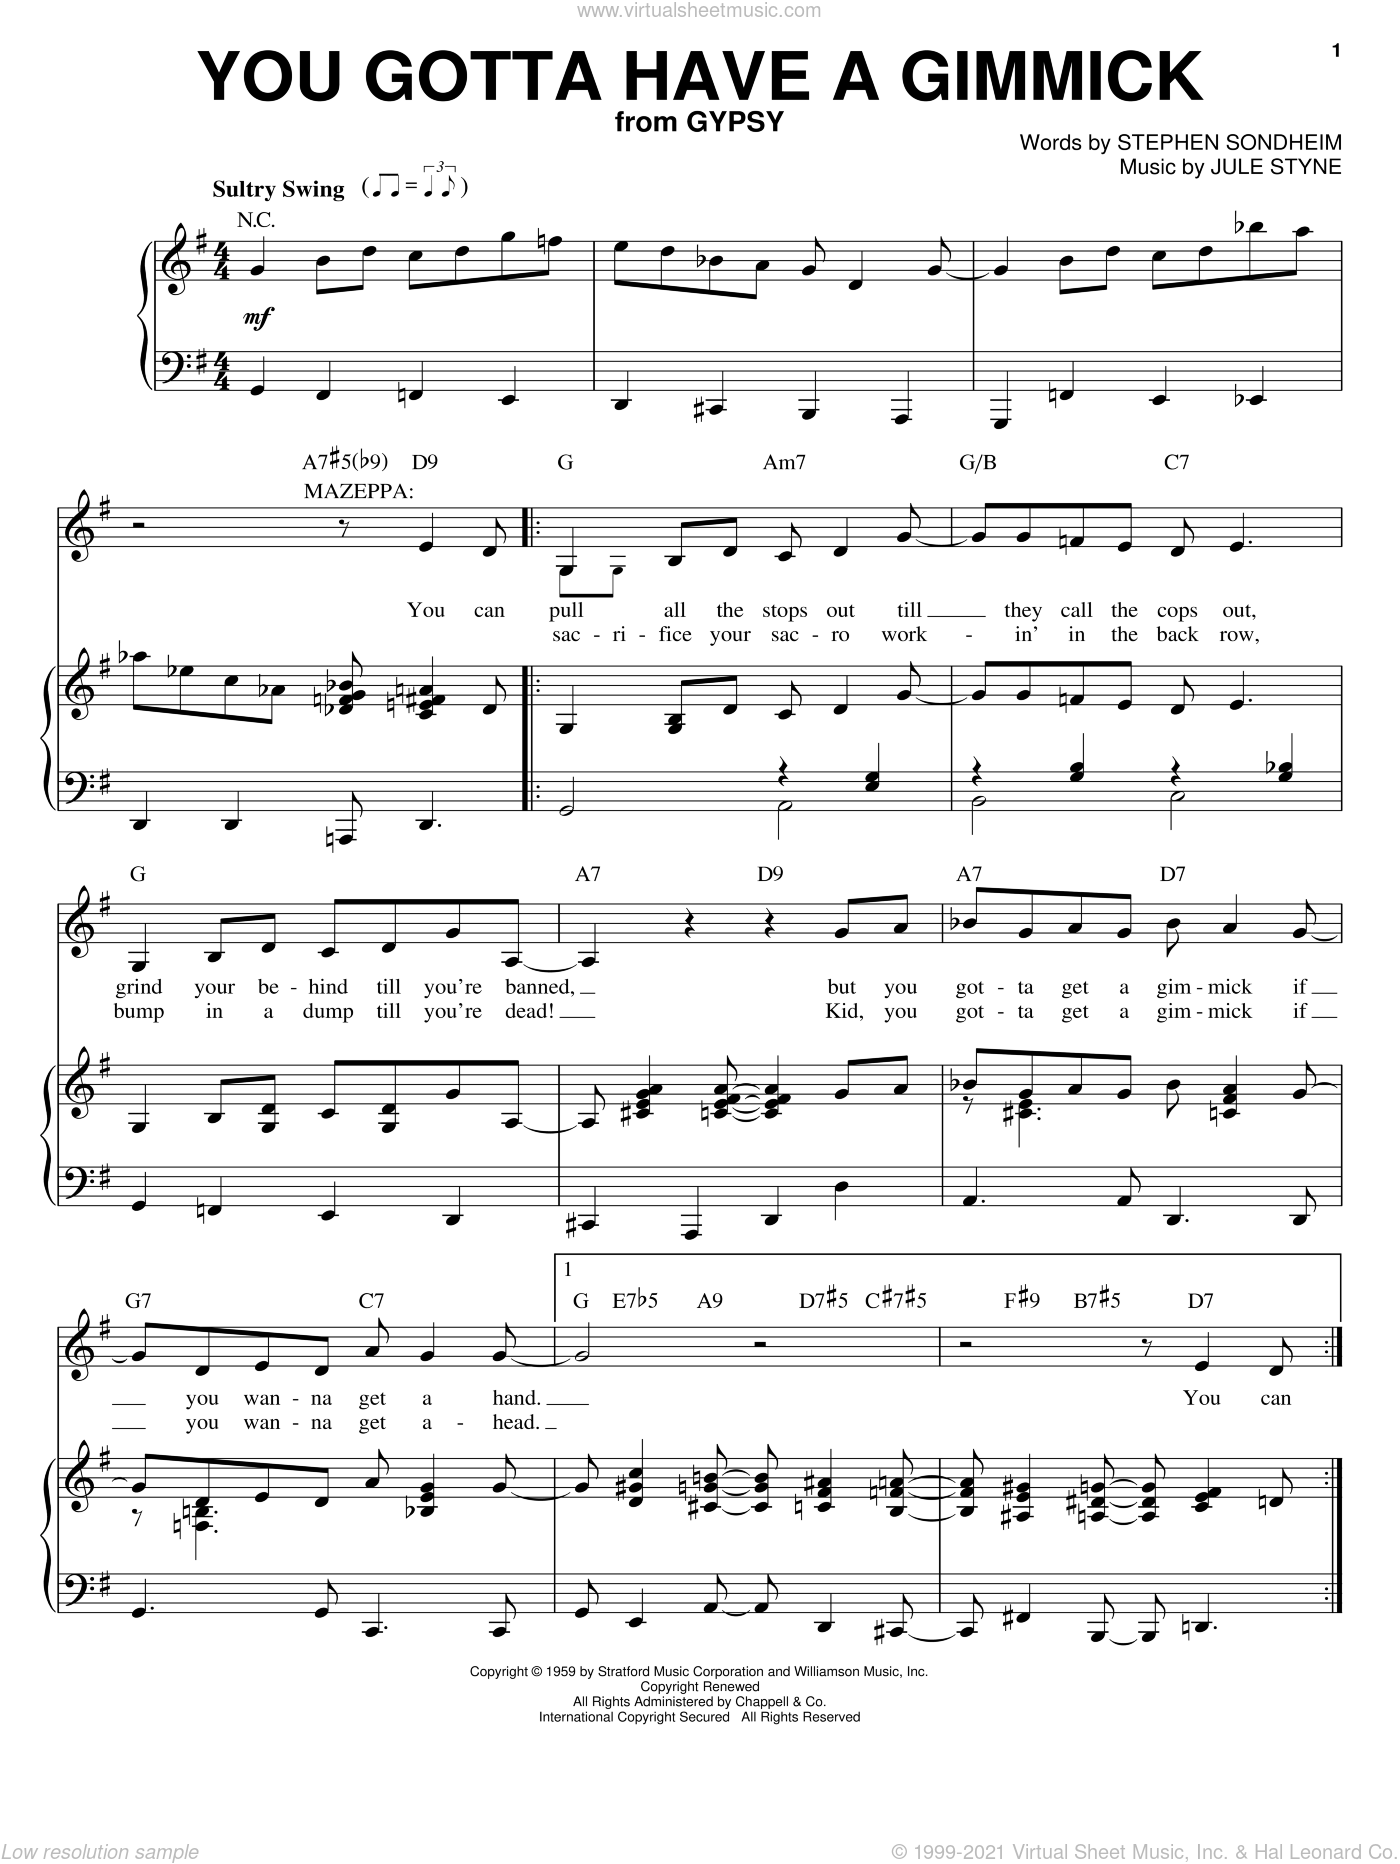 You Gotta Have A Gimmick sheet music for voice and piano by Jule Styne and Stephen Sondheim. Score Image Preview.